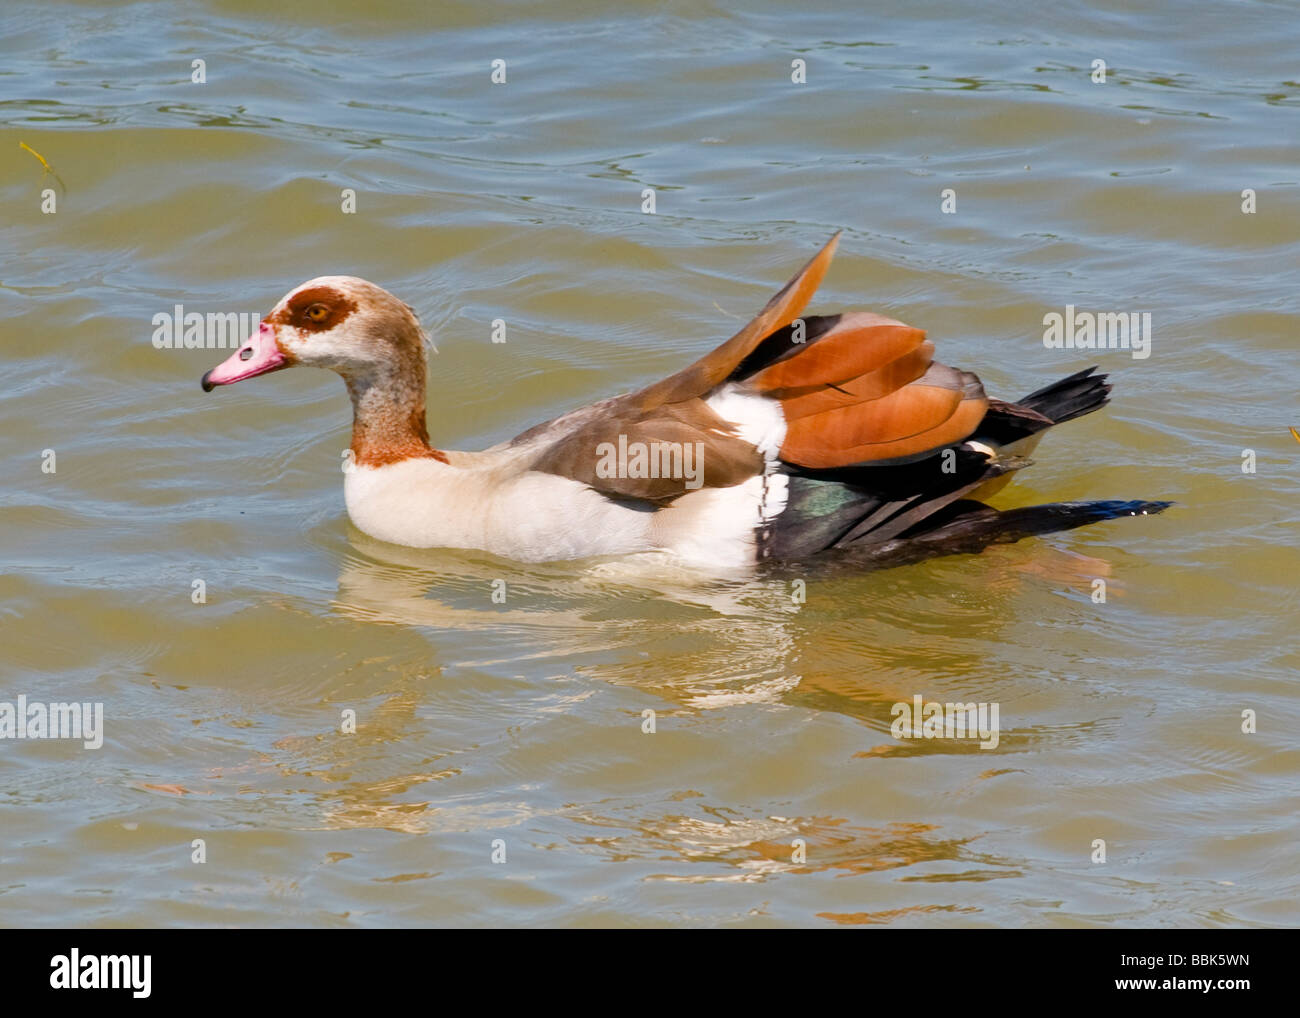 The Egyptian Goose (Alopochen aegyptiacus) is a member of the duck, goose and swan family Anatidae. - Stock Image